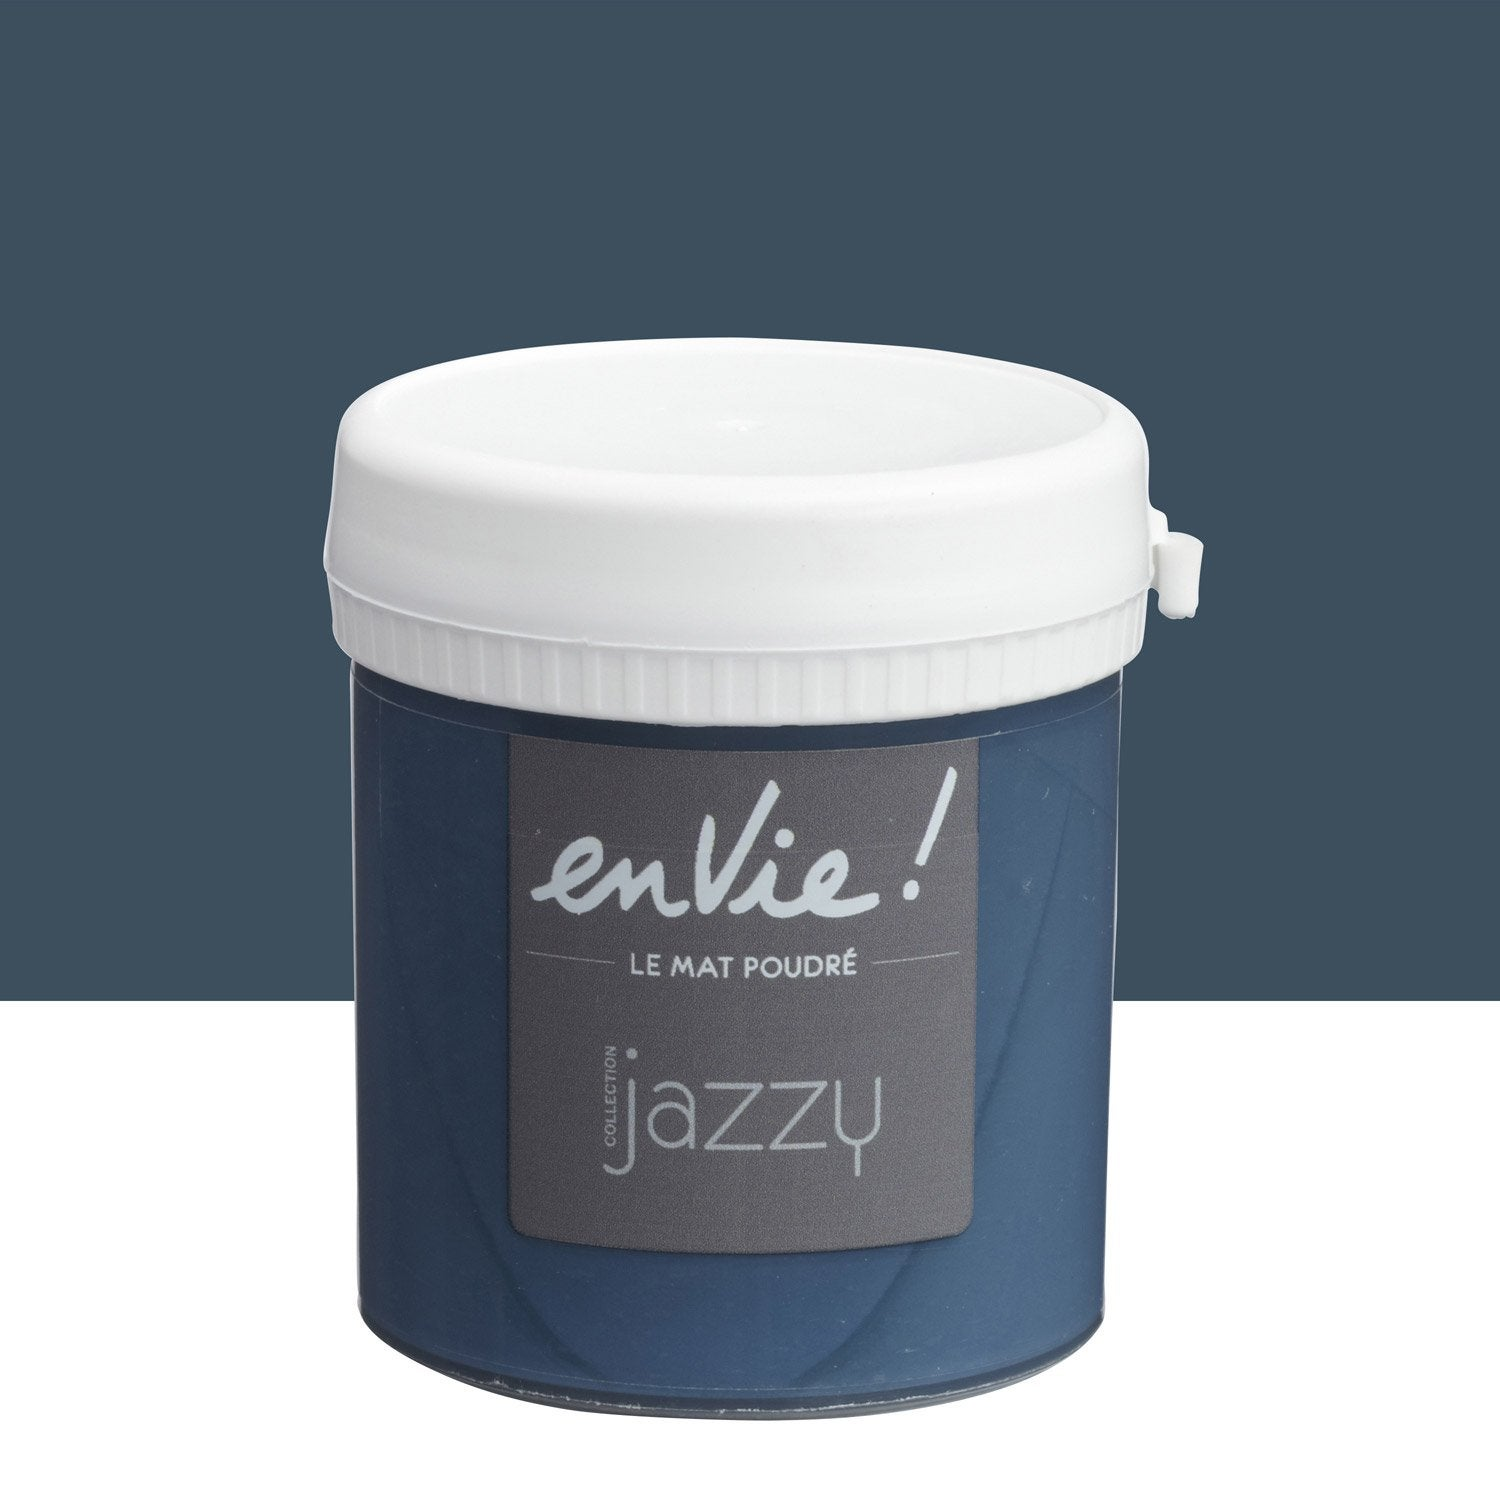 Testeur peinture note bleue luxens envie collection jazzy l leroy merlin - Peinture envie leroy merlin ...